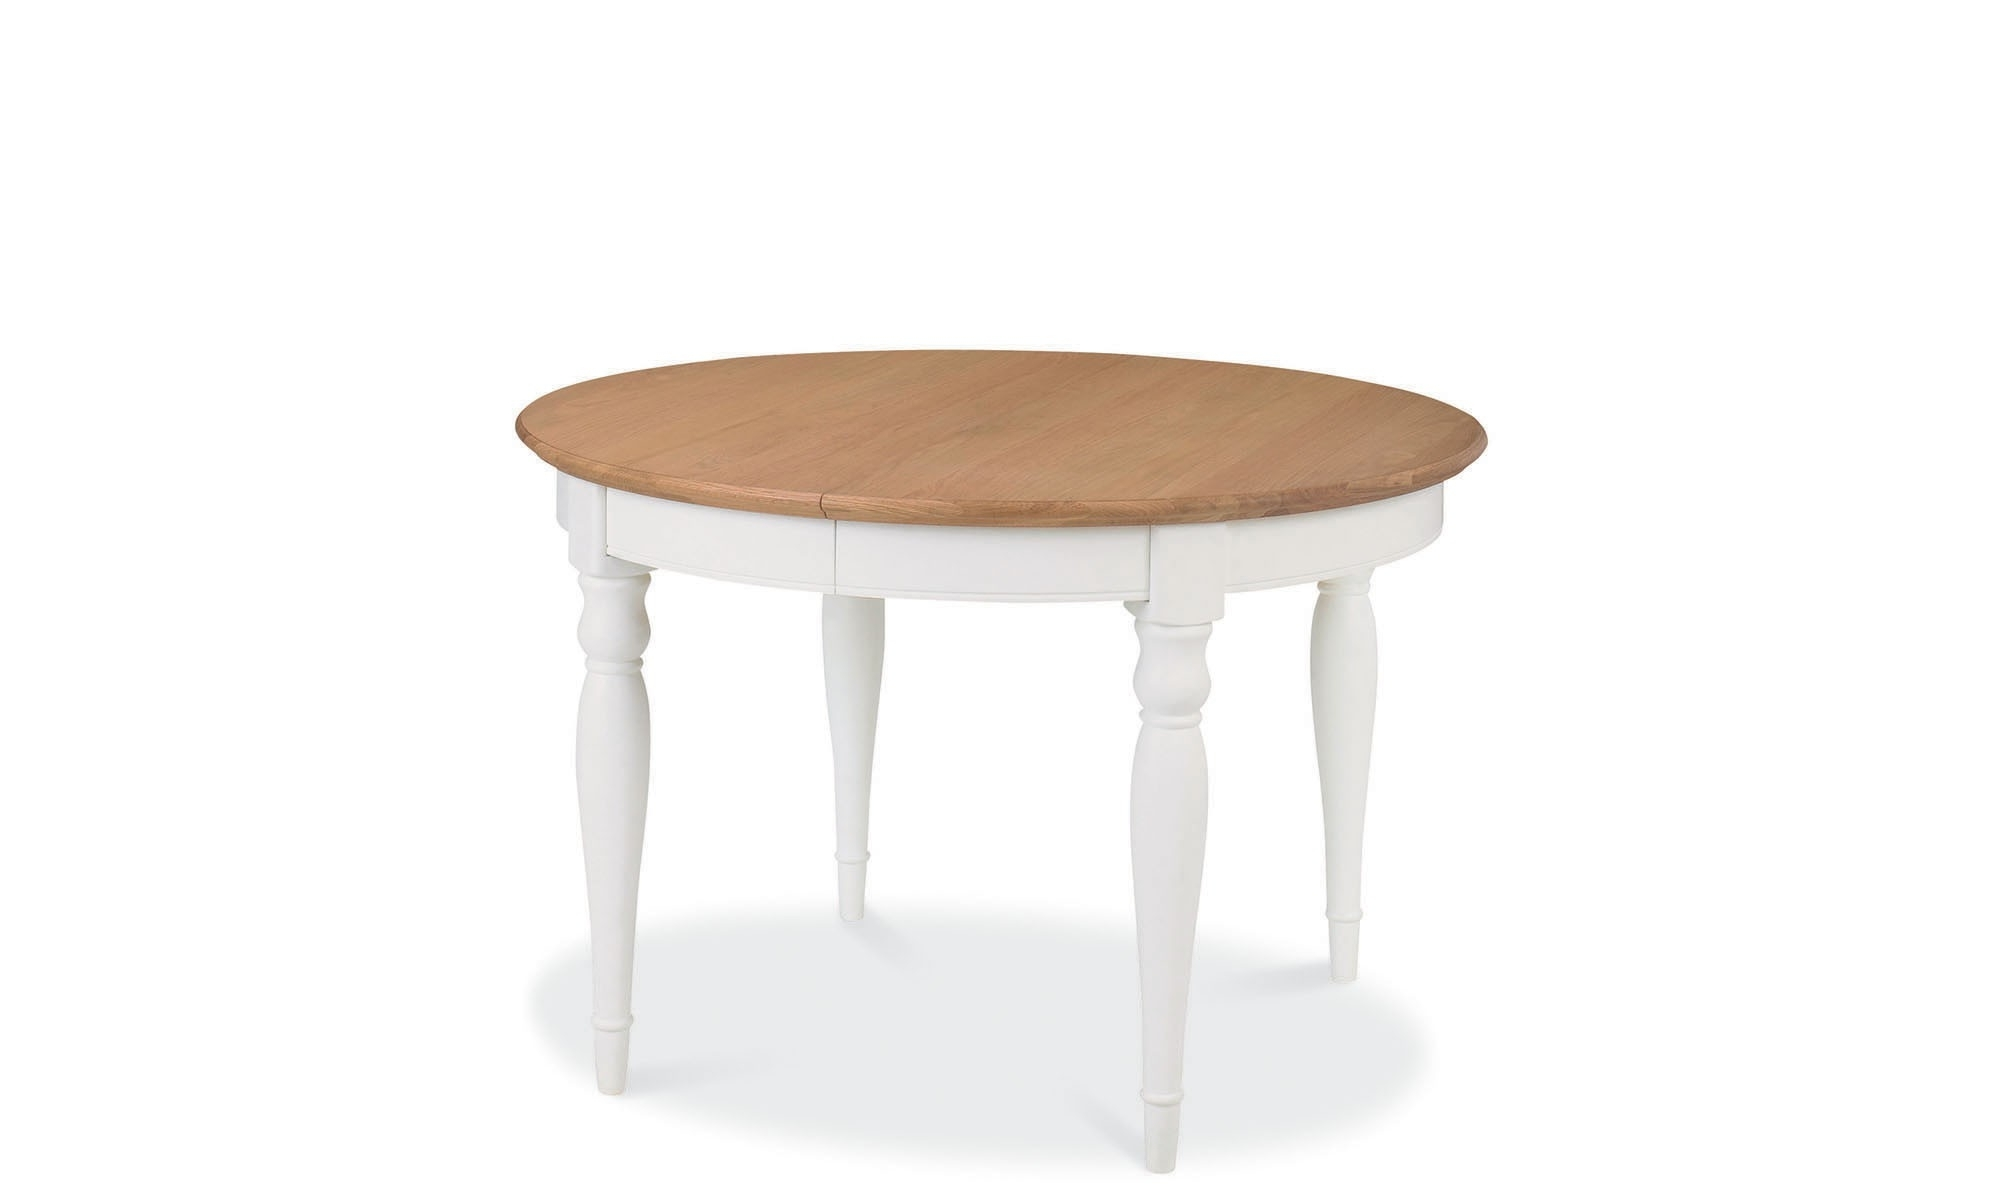 Extendable Round Dining Tables inside Latest Georgie - Round Extendable Dining Table - Fishpools